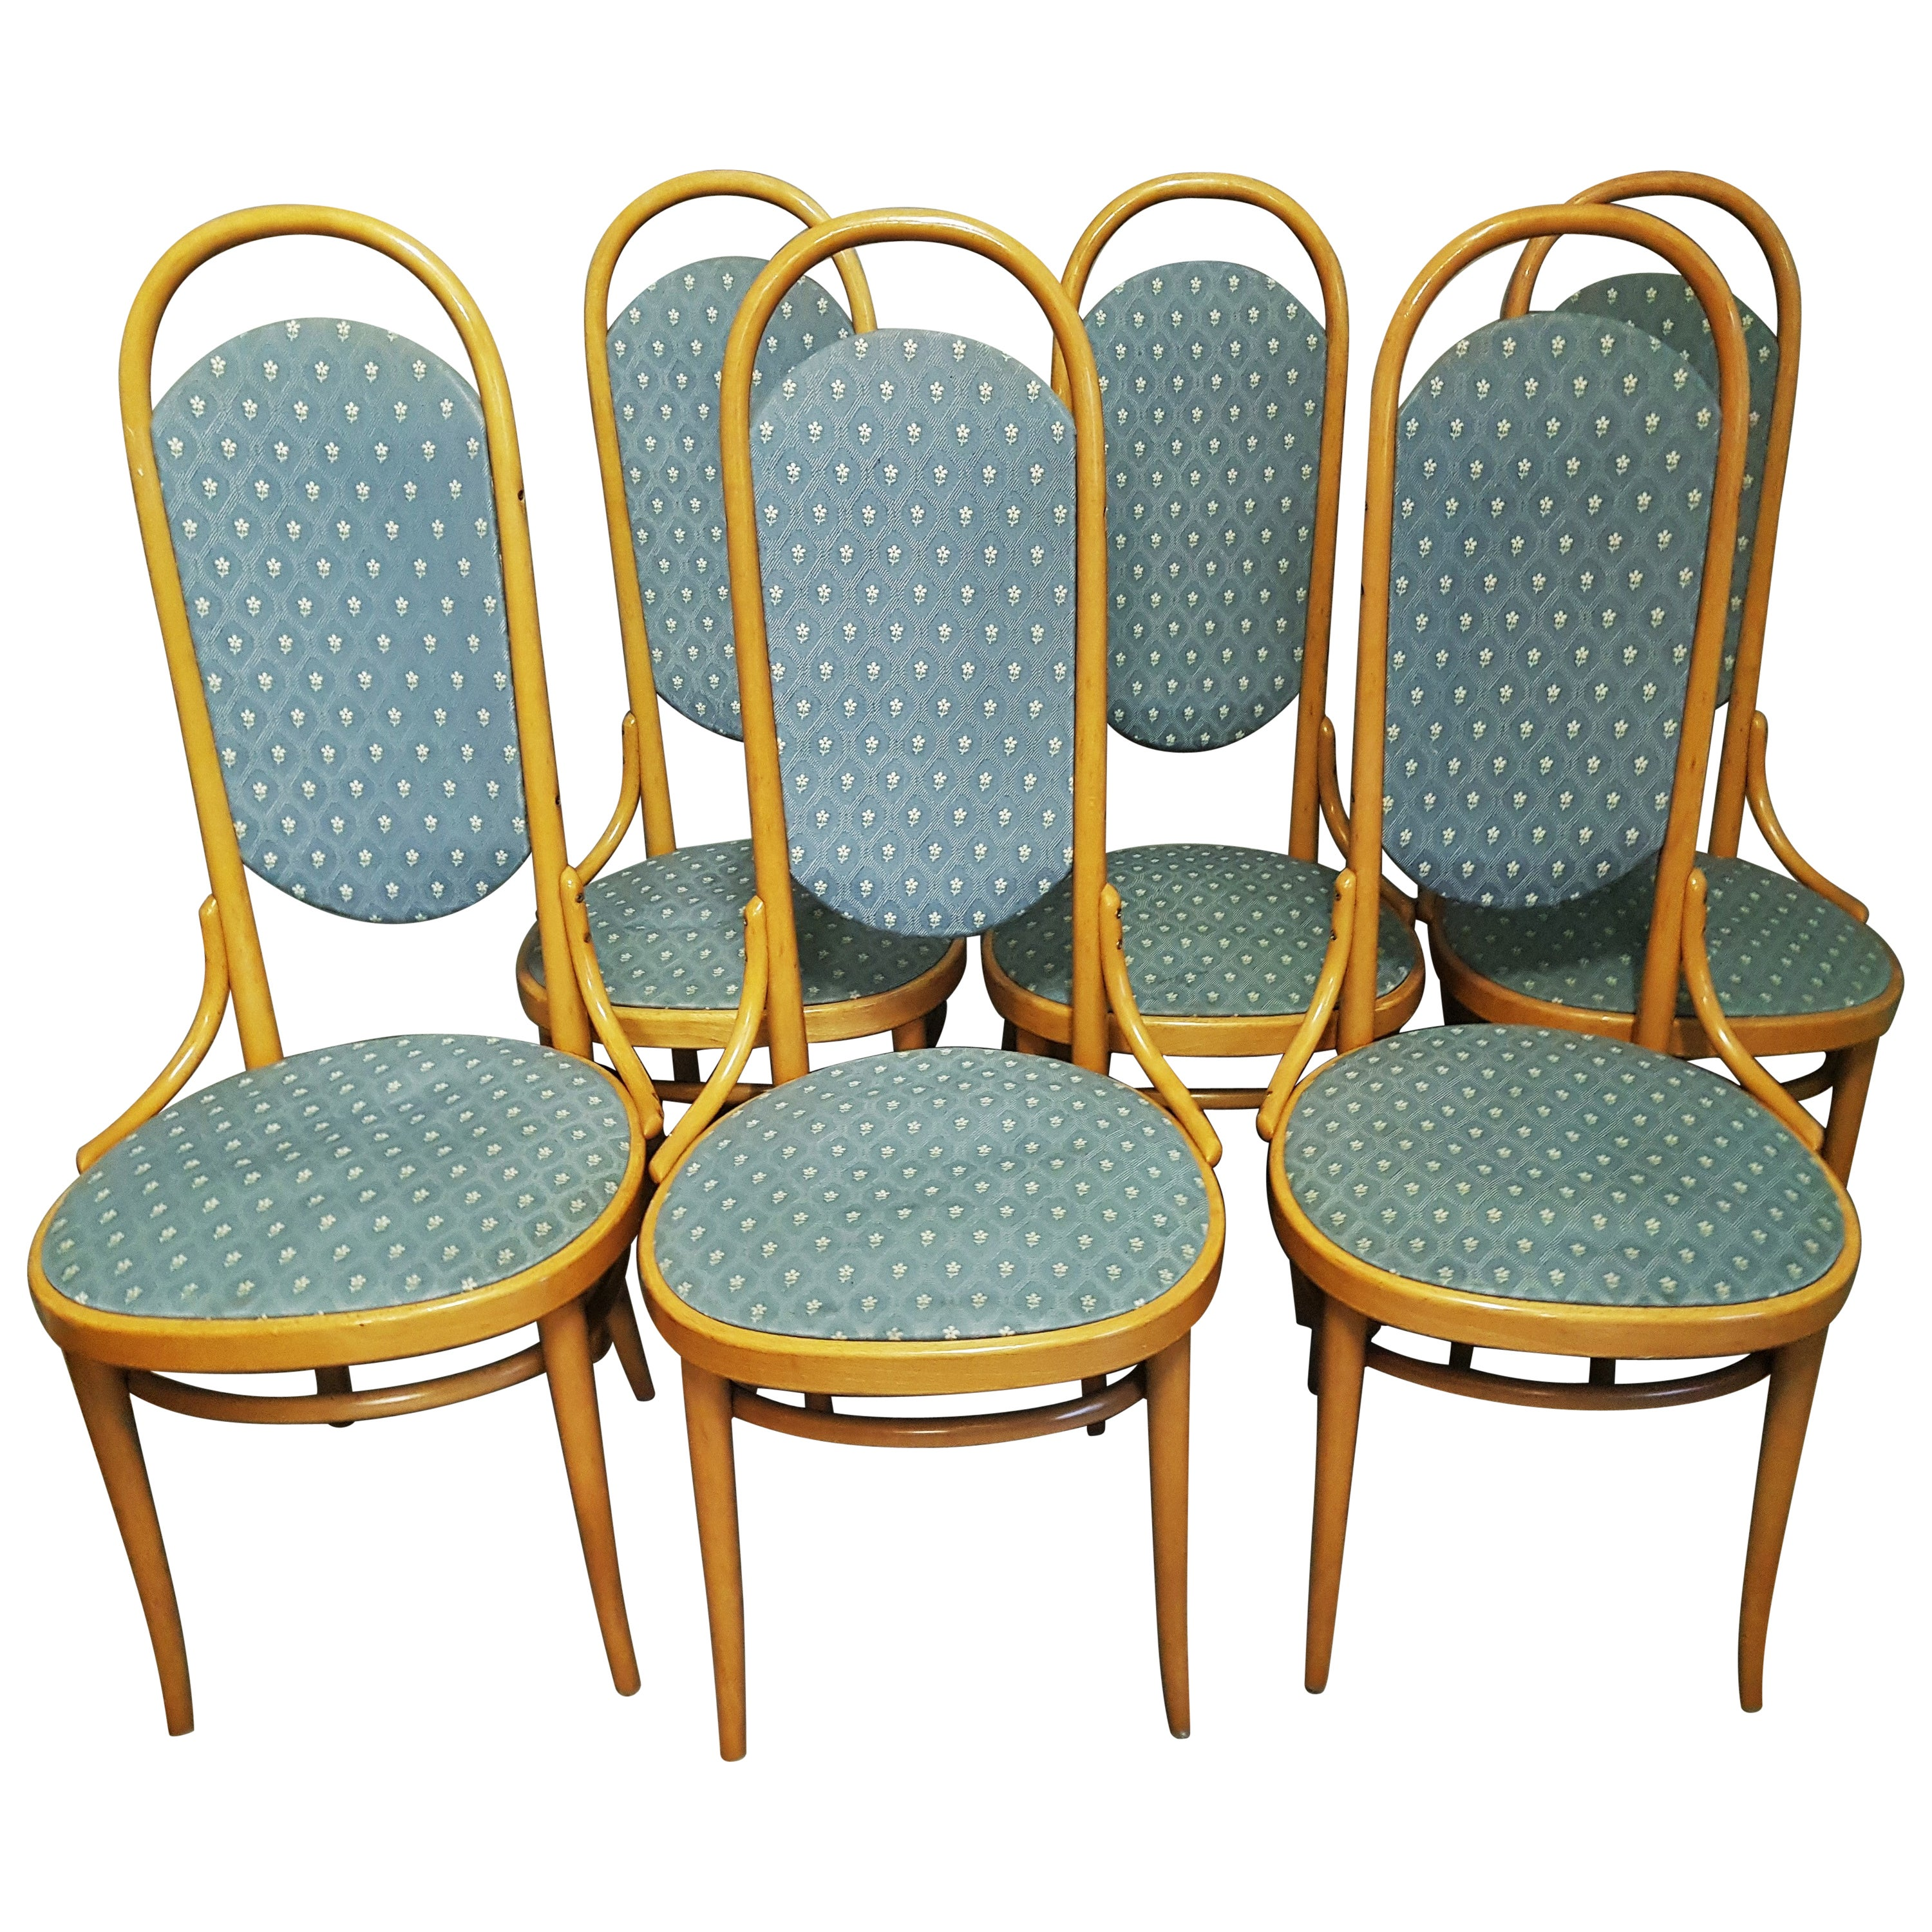 Midcentury Set of 6 Thonet High Back Bentwood Dining Chairs